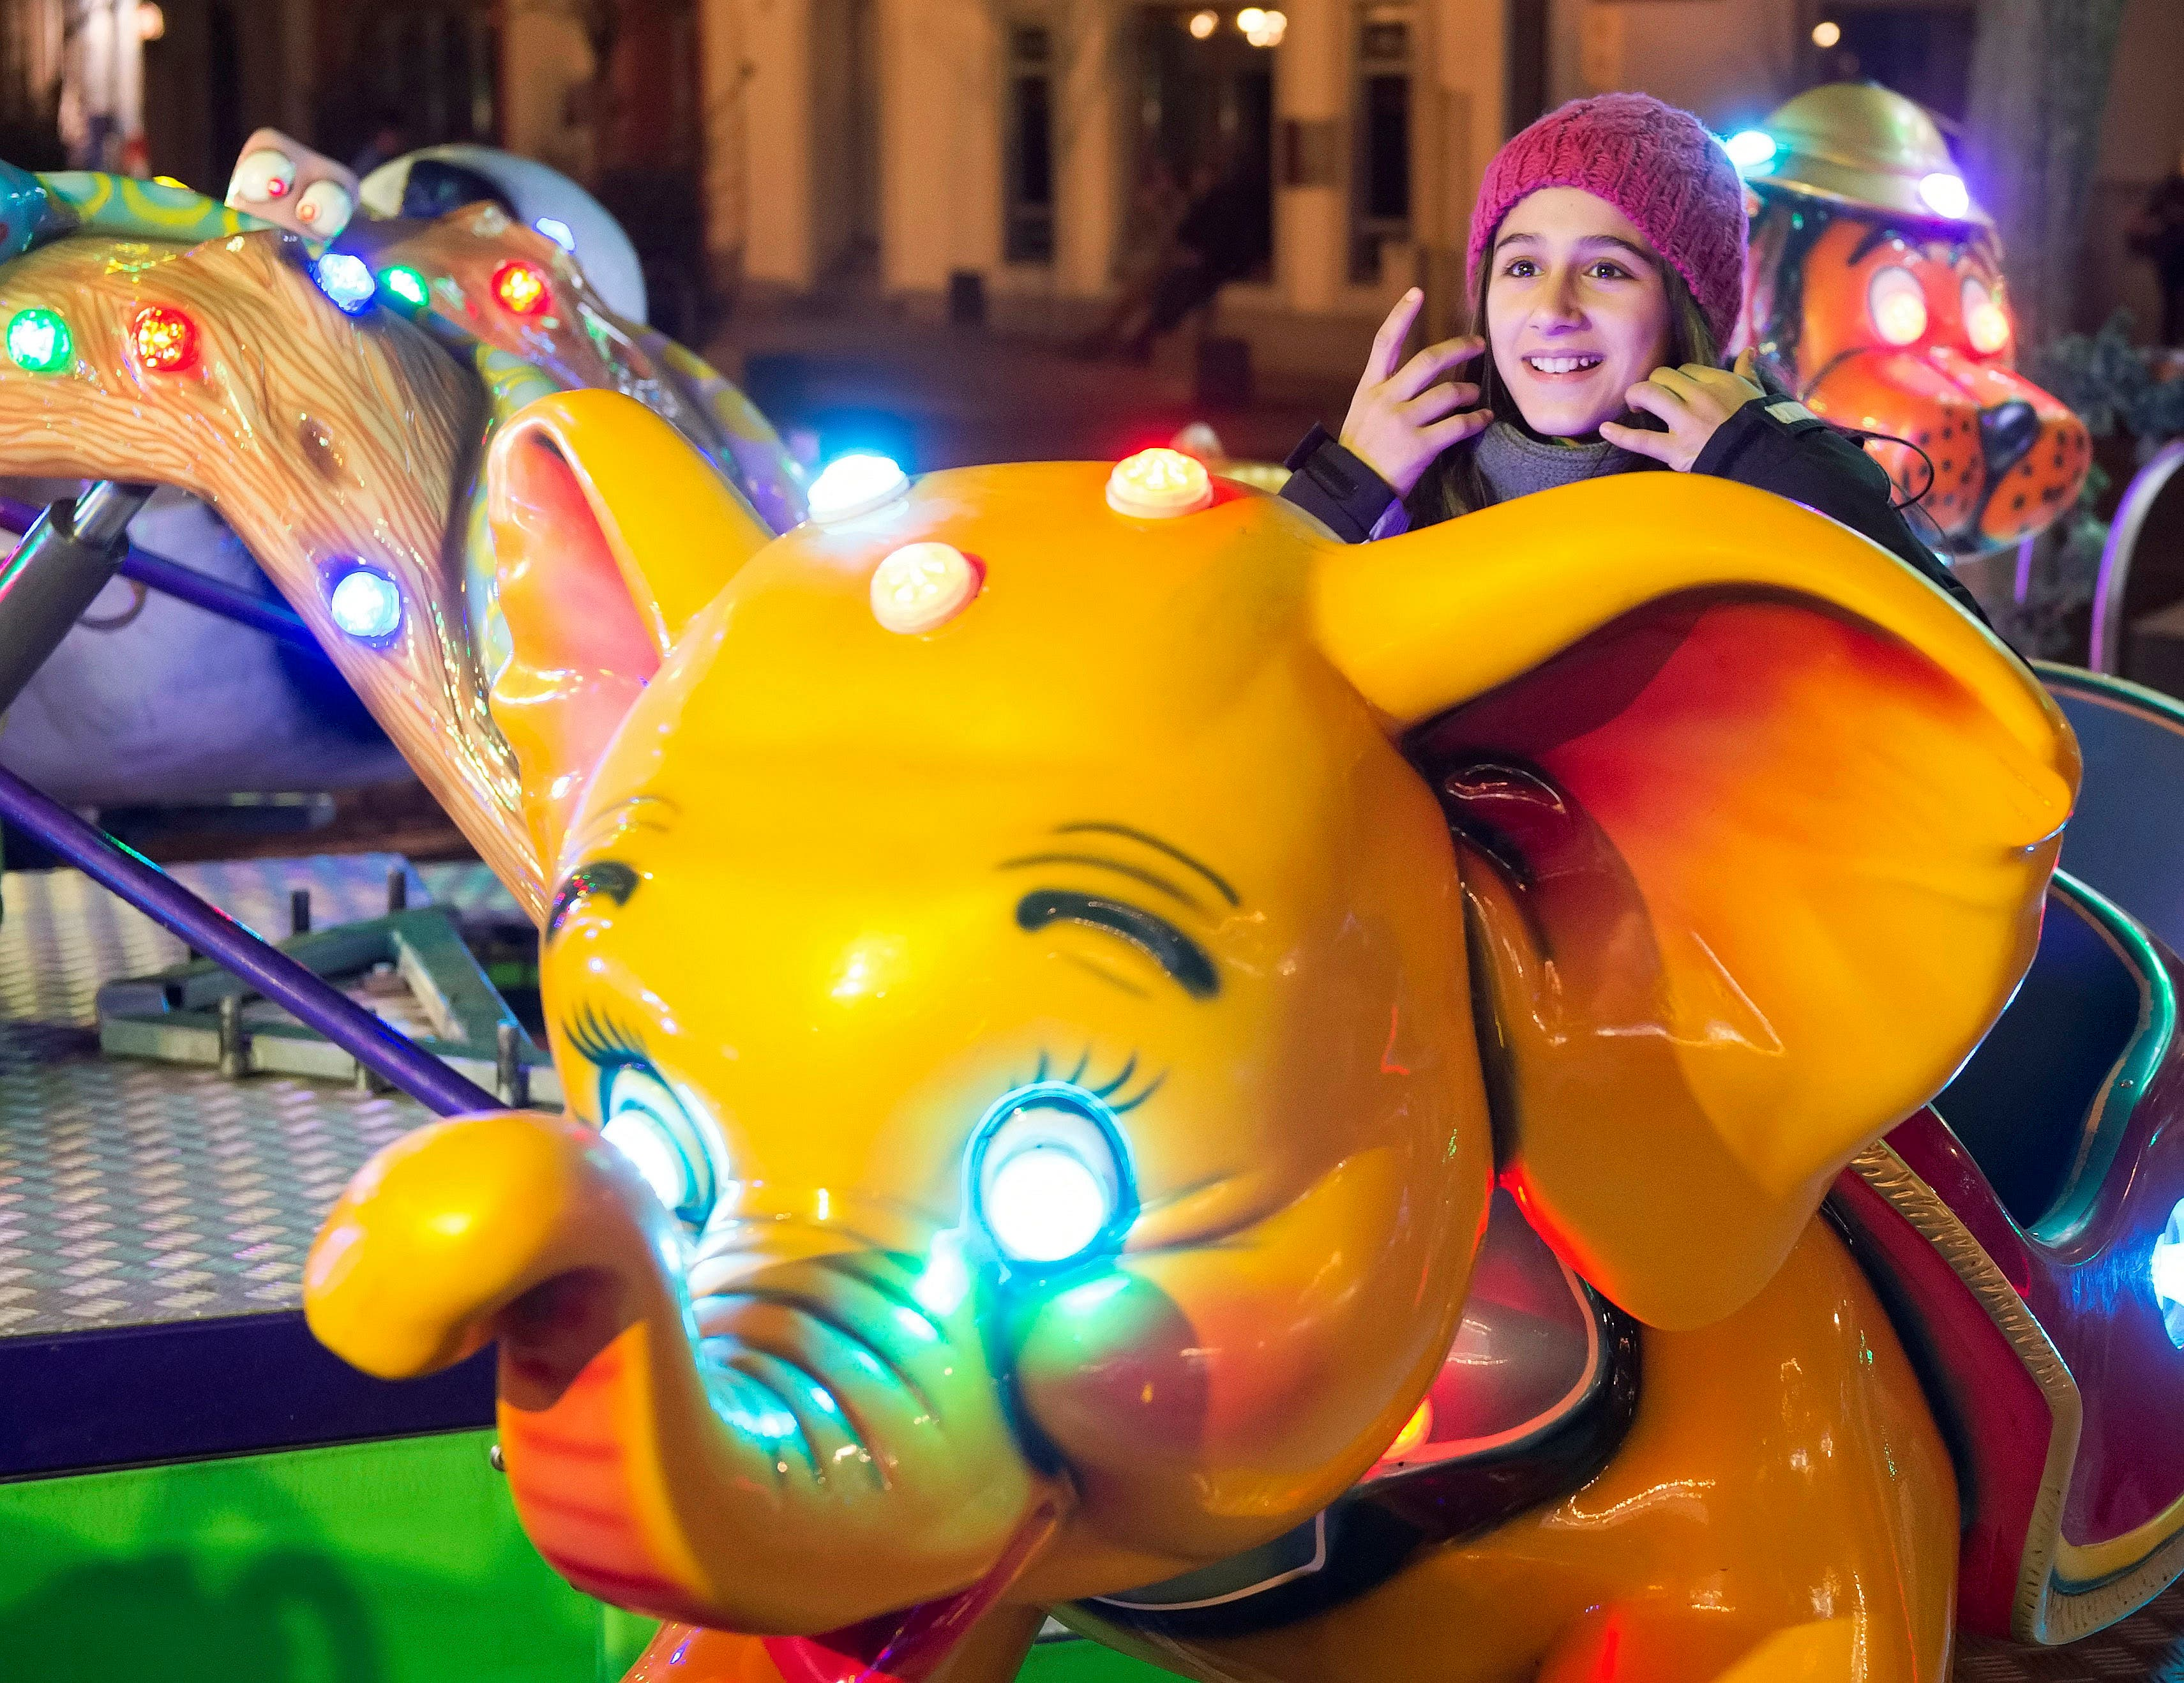 In this photo taken Tuesday, Dec. 8, 2015, Syrian refugee Raghad Habashieh rides on a carousel at the Christmas market in Zwickau, eastern Germany.